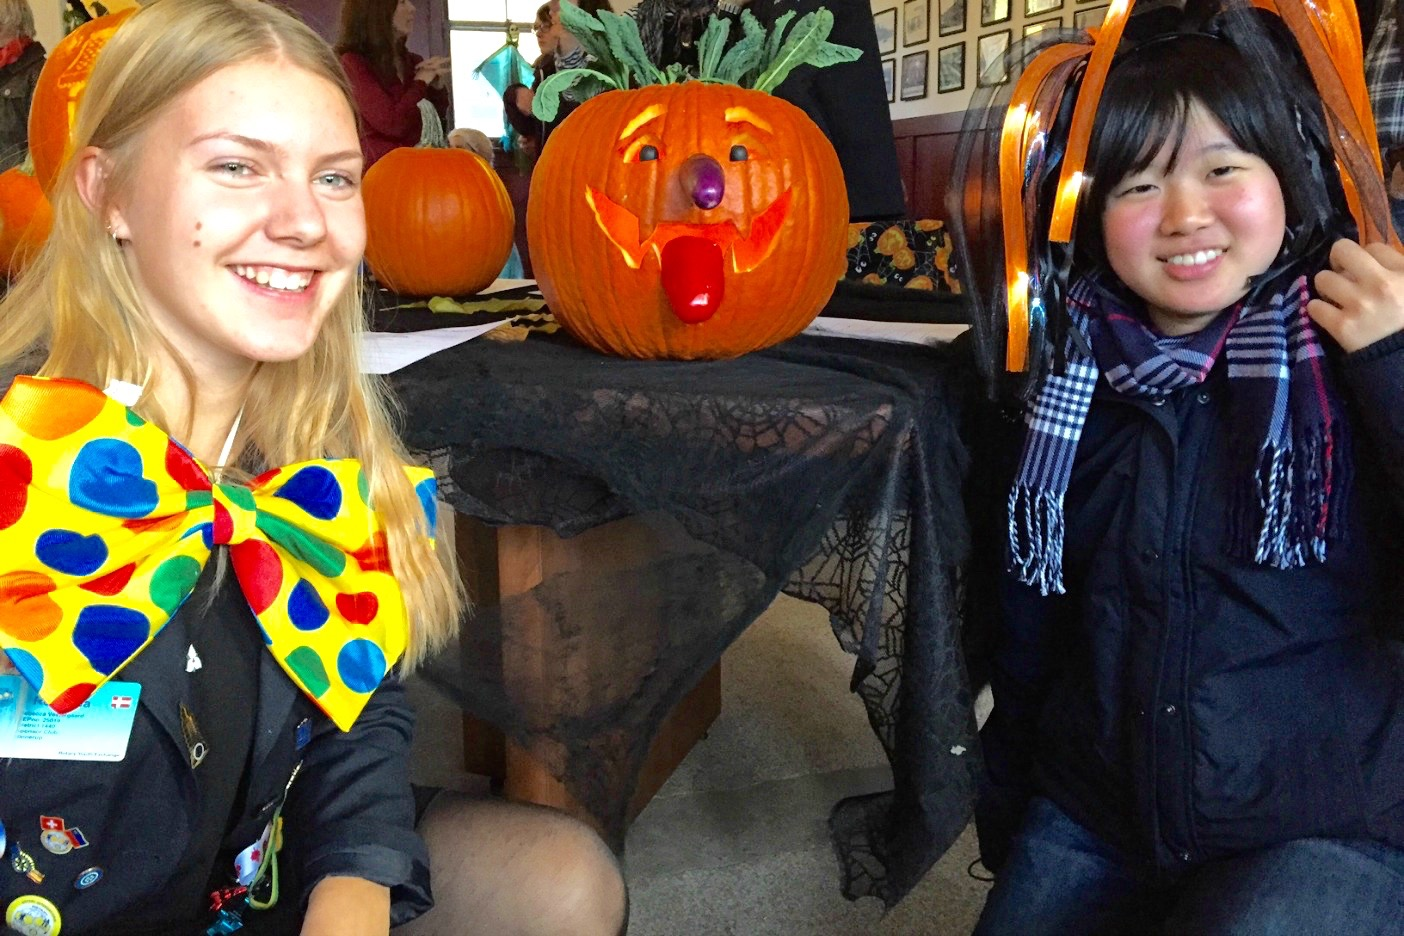 Rebecca Vastergaard, a Rotary Exchange student from Denmark and Maho Shihota a Muskoka Language Internation exchange student from Tokyo got into the Halloween spirit too